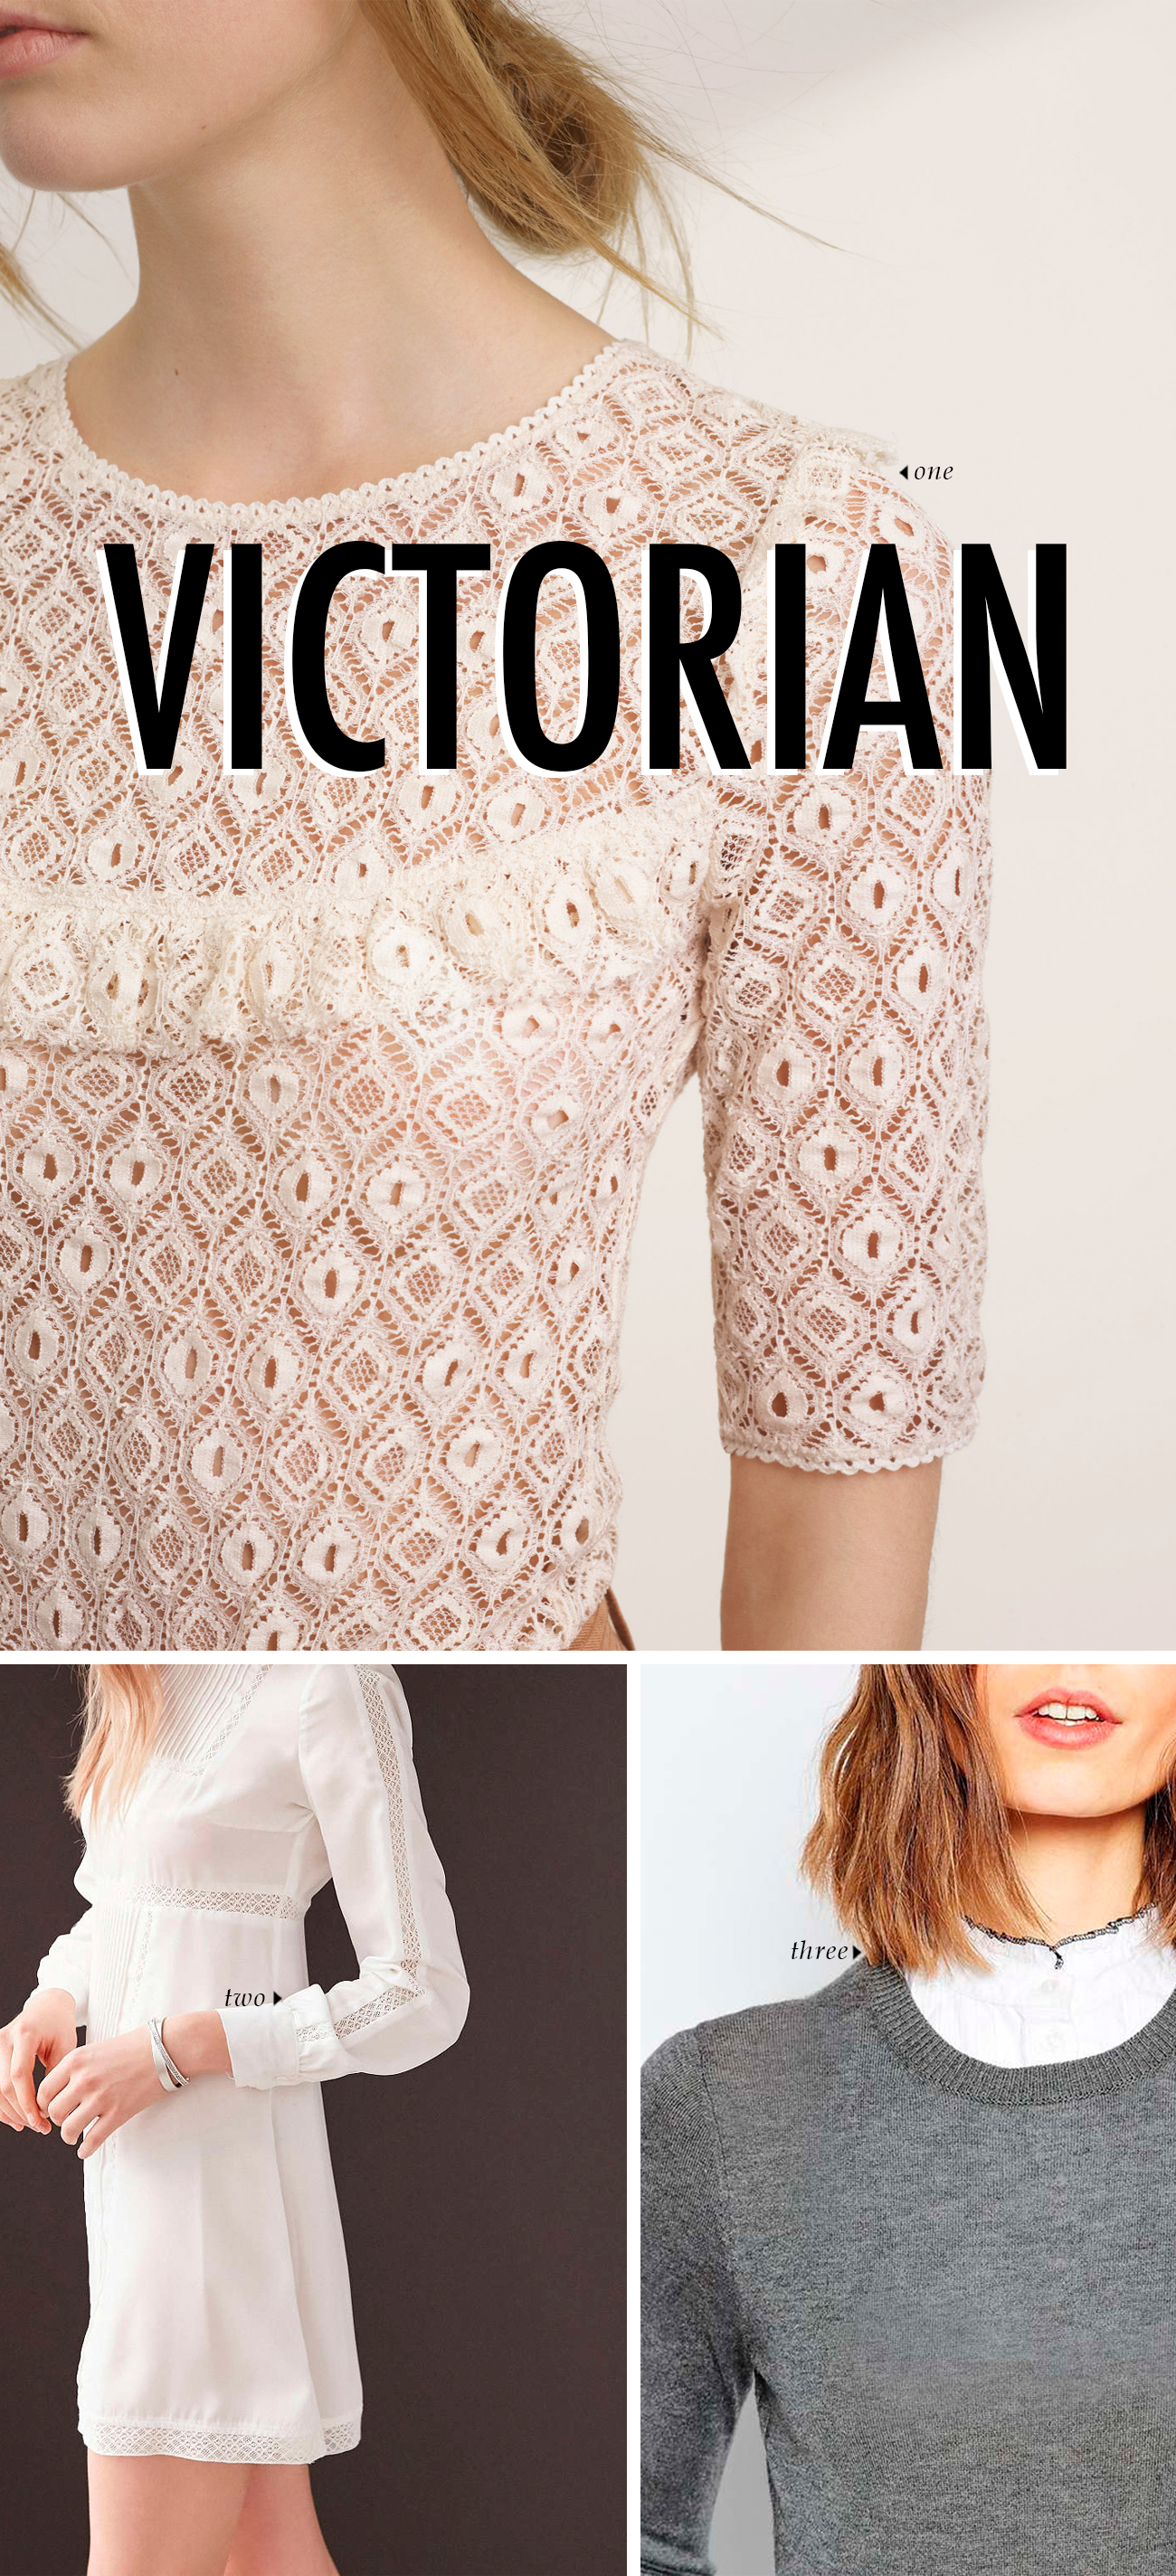 spring summer 2016 clothing trends - VICTORIAN #trends